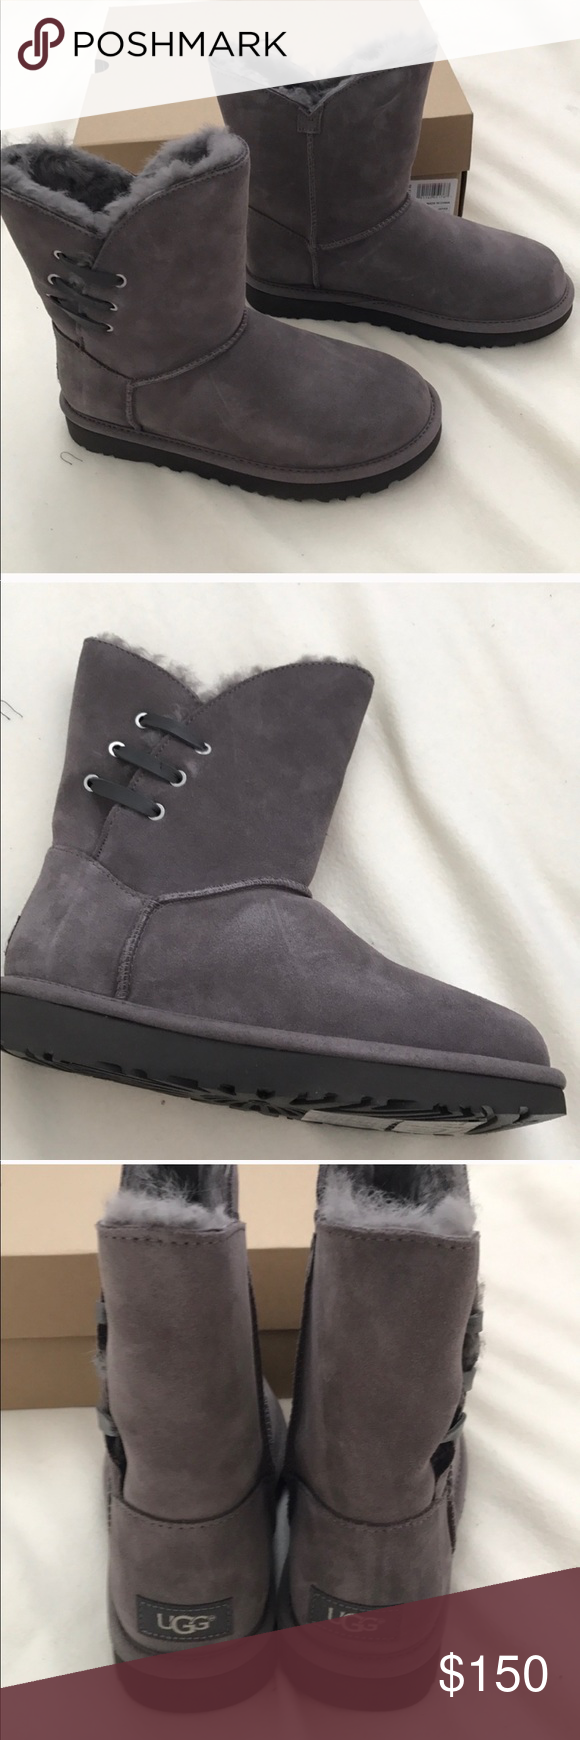 3f135981c58 Brand new authentic UGG Constantine boots New in box UGG Shoes ...